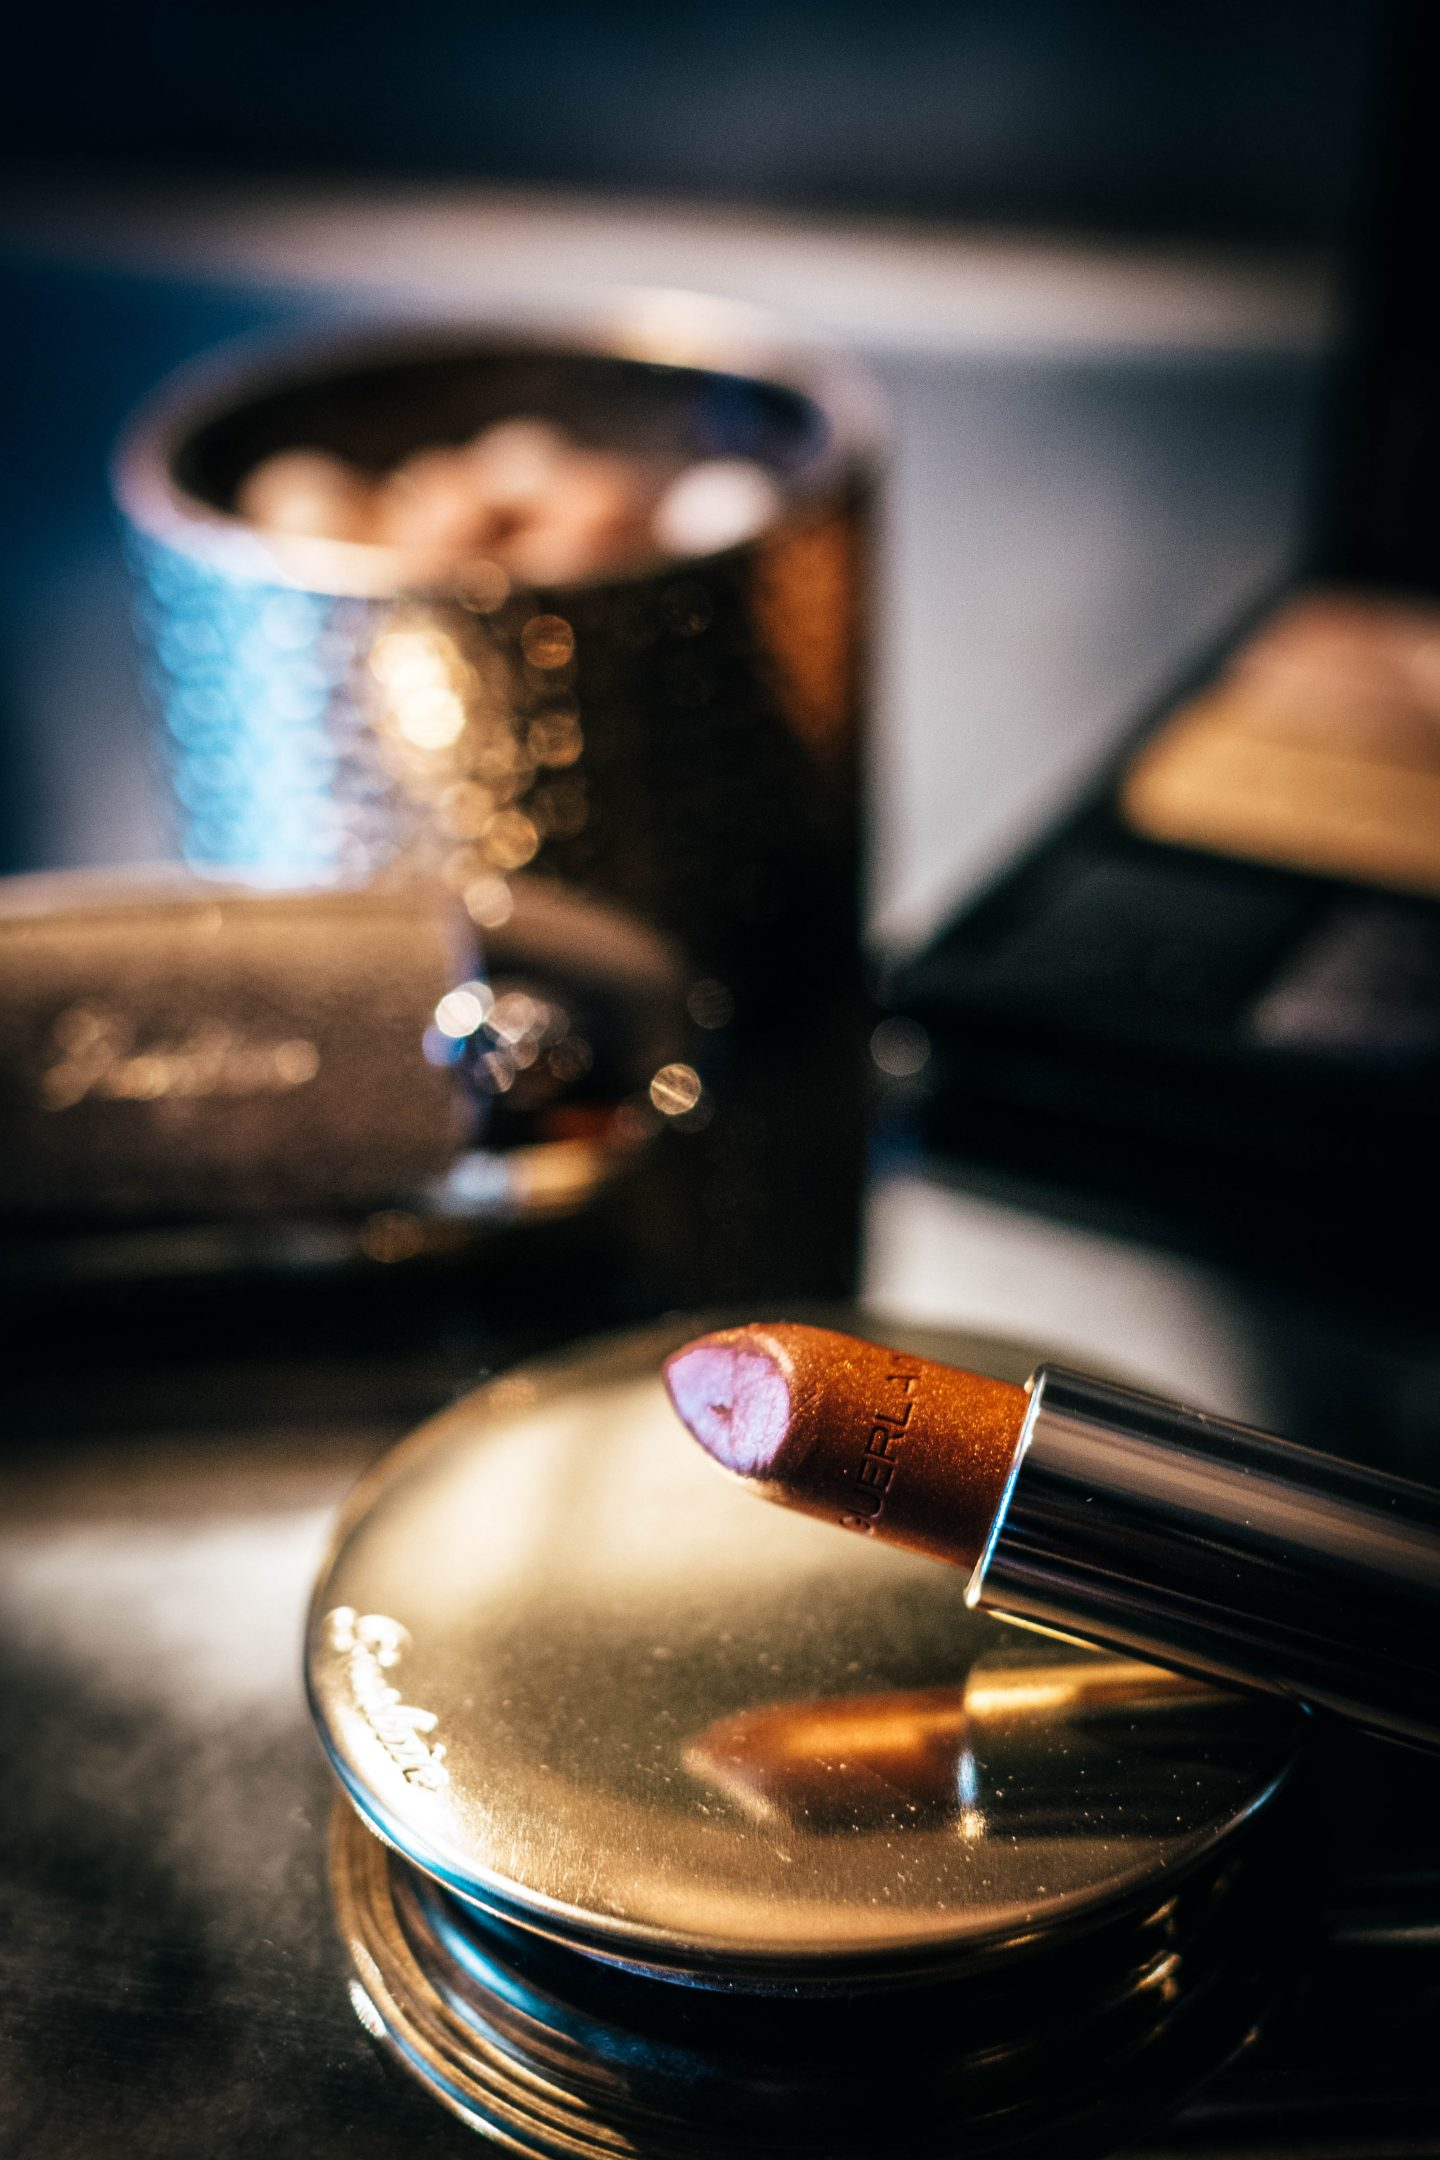 Guerlain limited edition lipstick n93